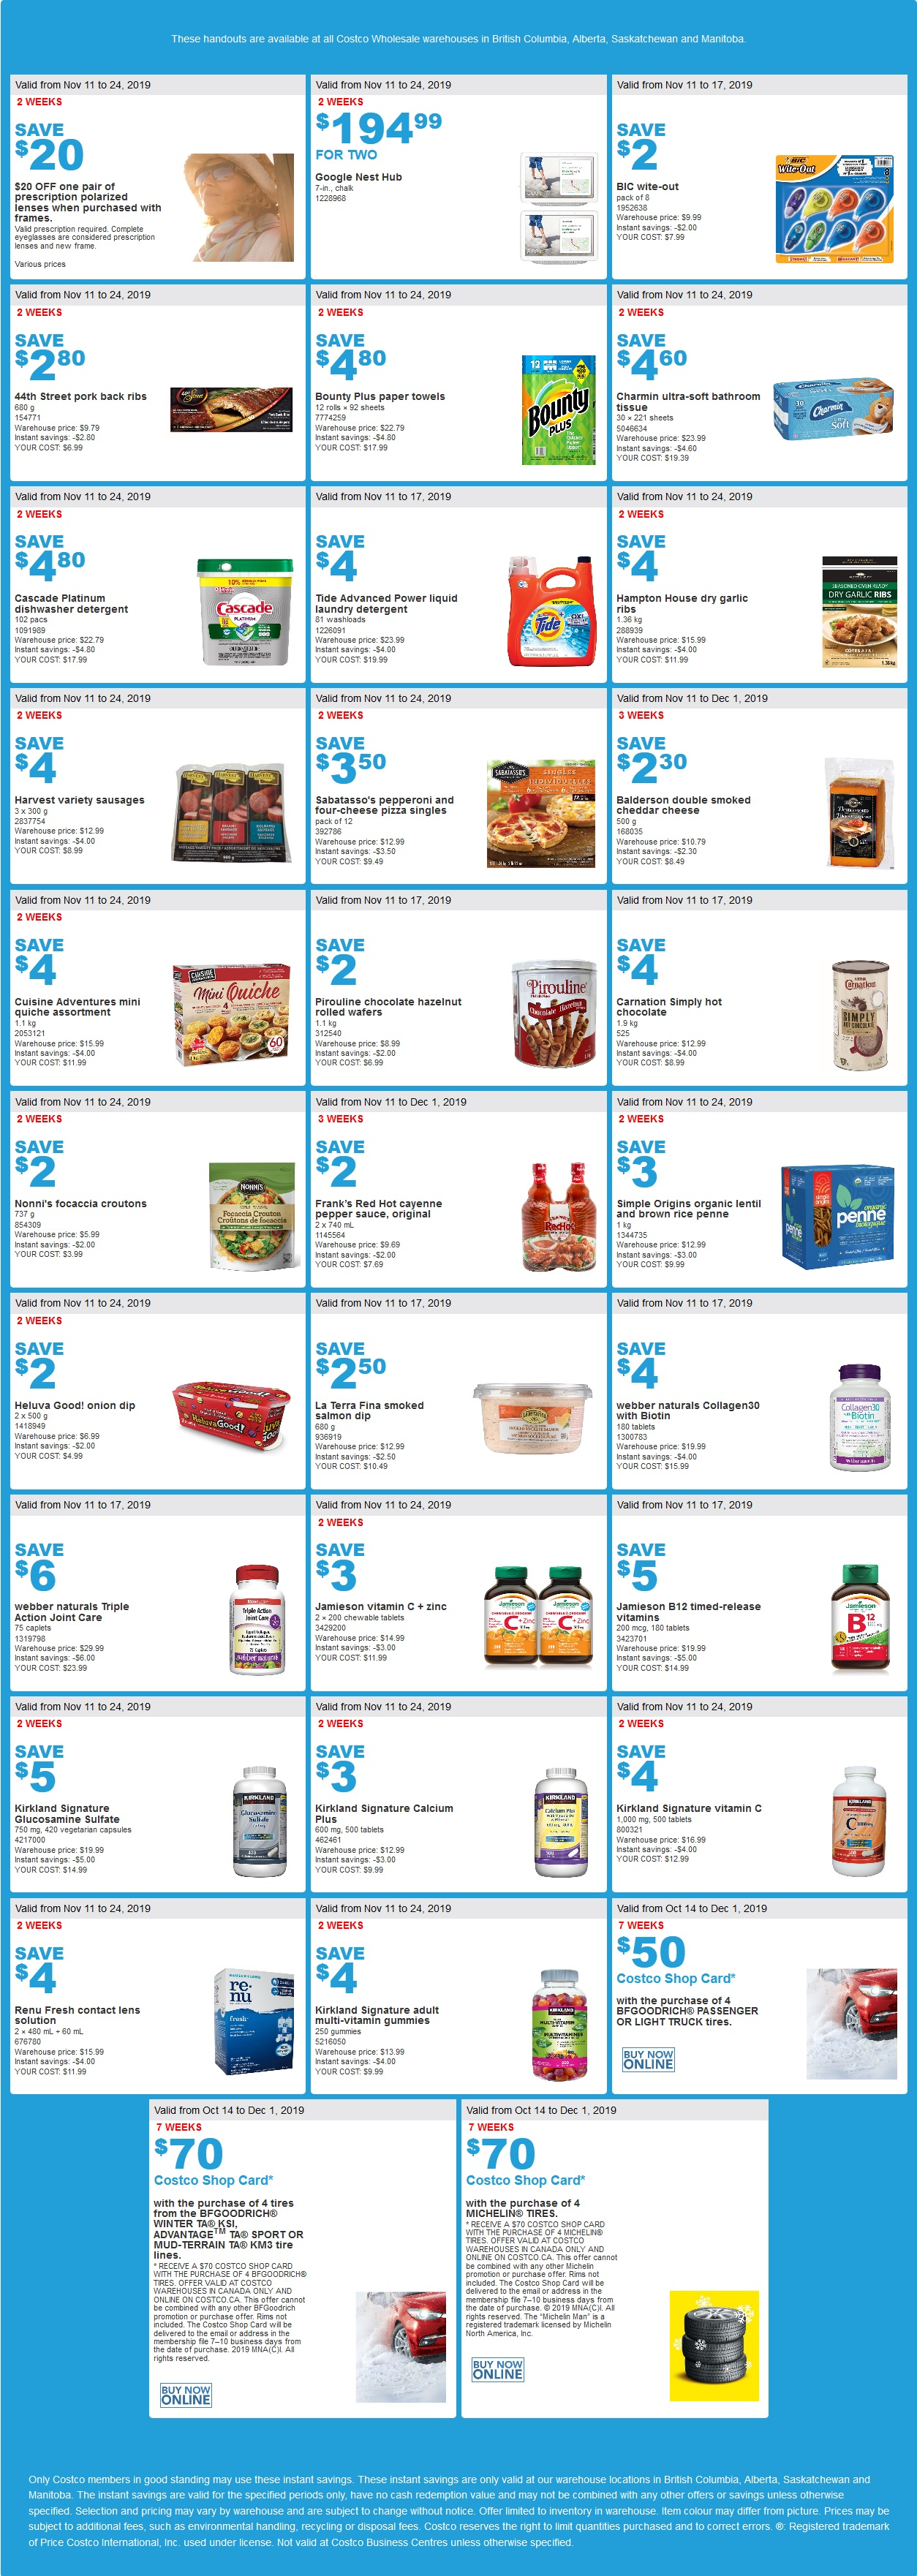 Costco Flyer for Oct Nov 11-17 2019 for BC, AB, SK, MB